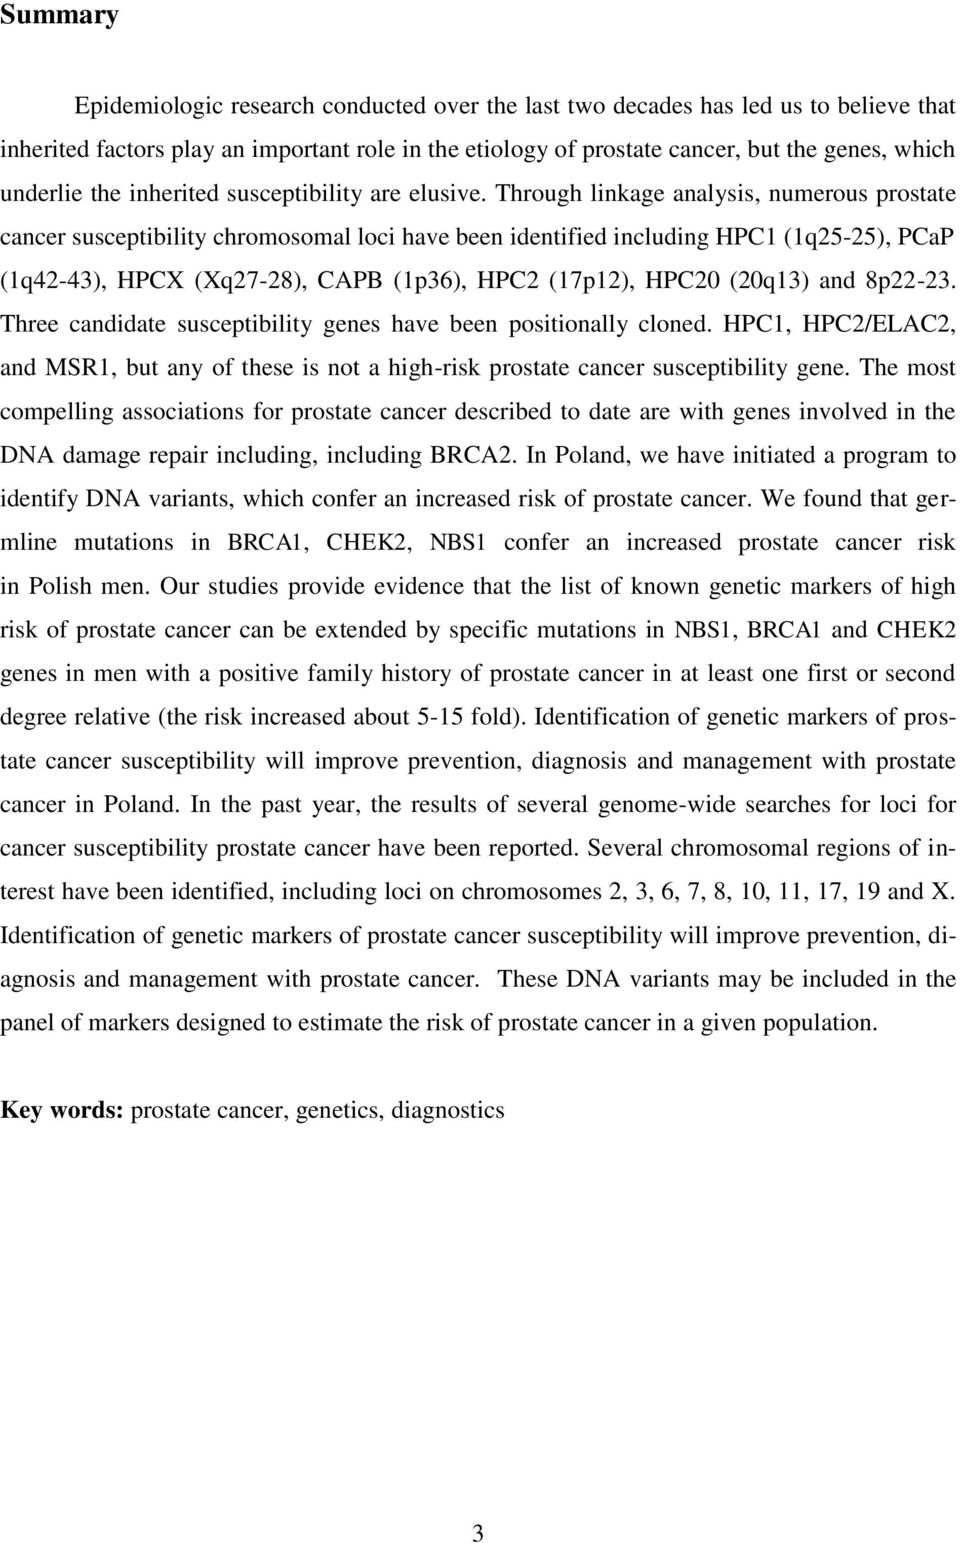 Through linkage analysis, numerous prostate cancer susceptibility chromosomal loci have been identified including HPC1 (1q25-25), PCaP (1q42-43), HPCX (Xq27-28), CAPB (1p36), HPC2 (17p12), HPC20